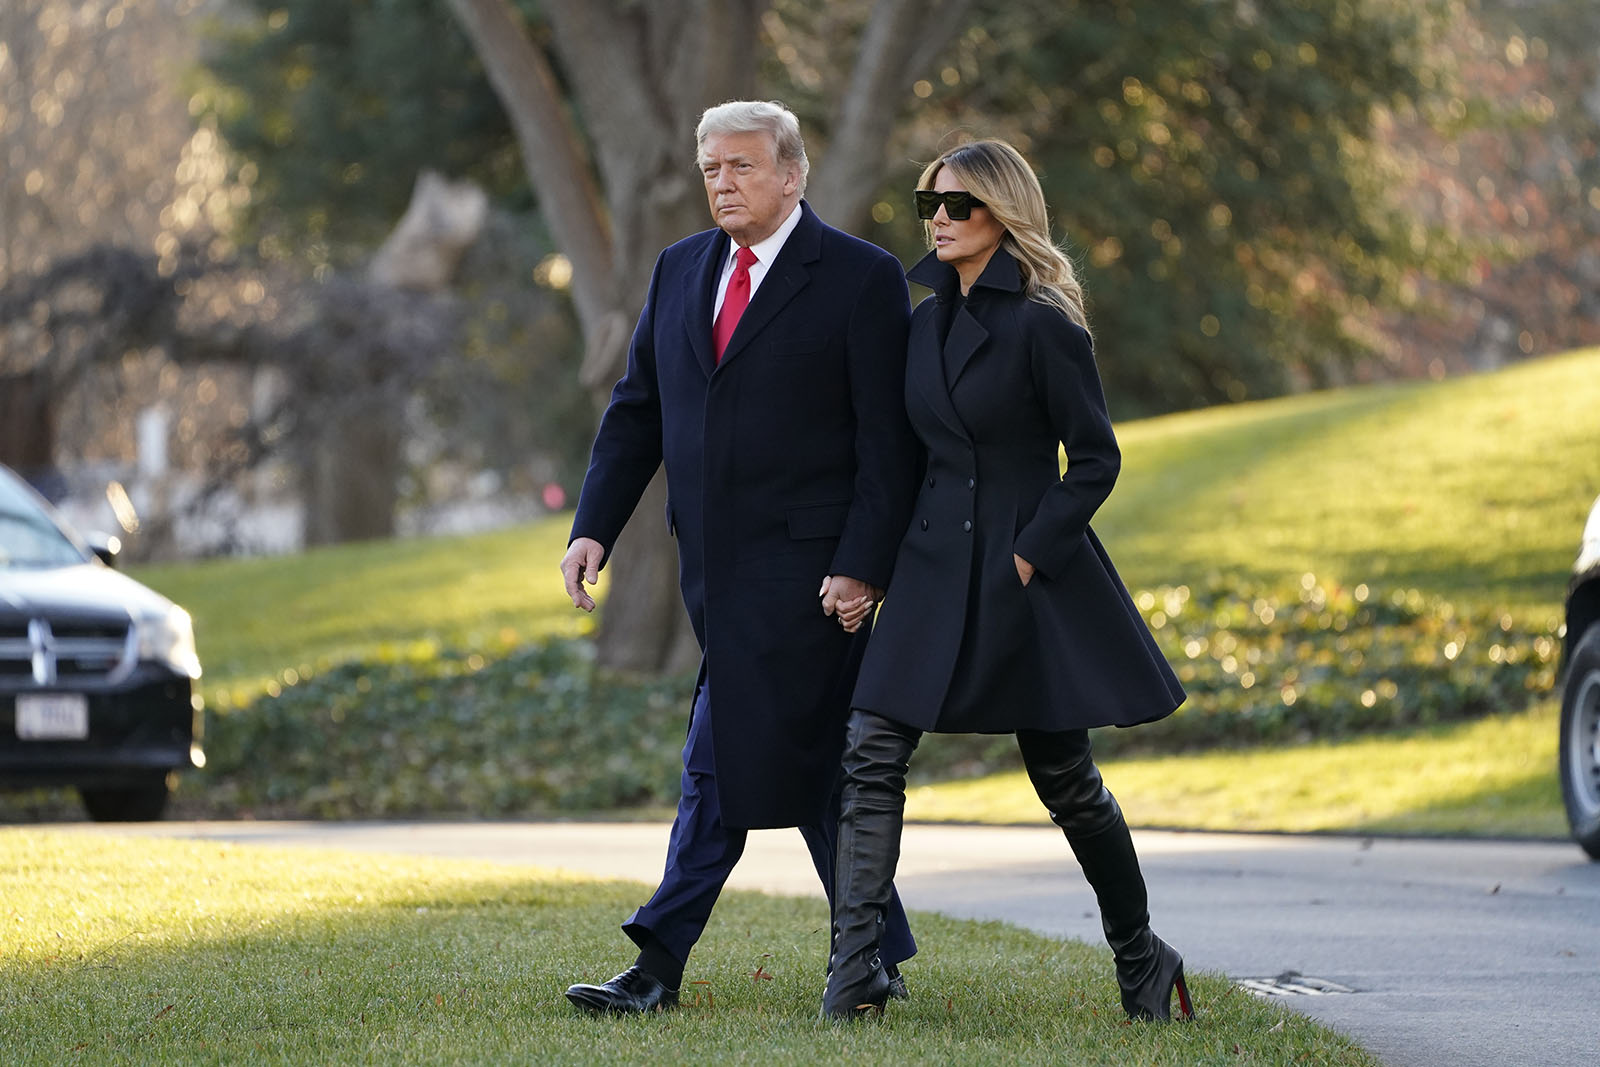 President Donald Trump and first lady Melania Trump walk to board Marine One on the South Lawn of the White House on Wednesday in Washington.